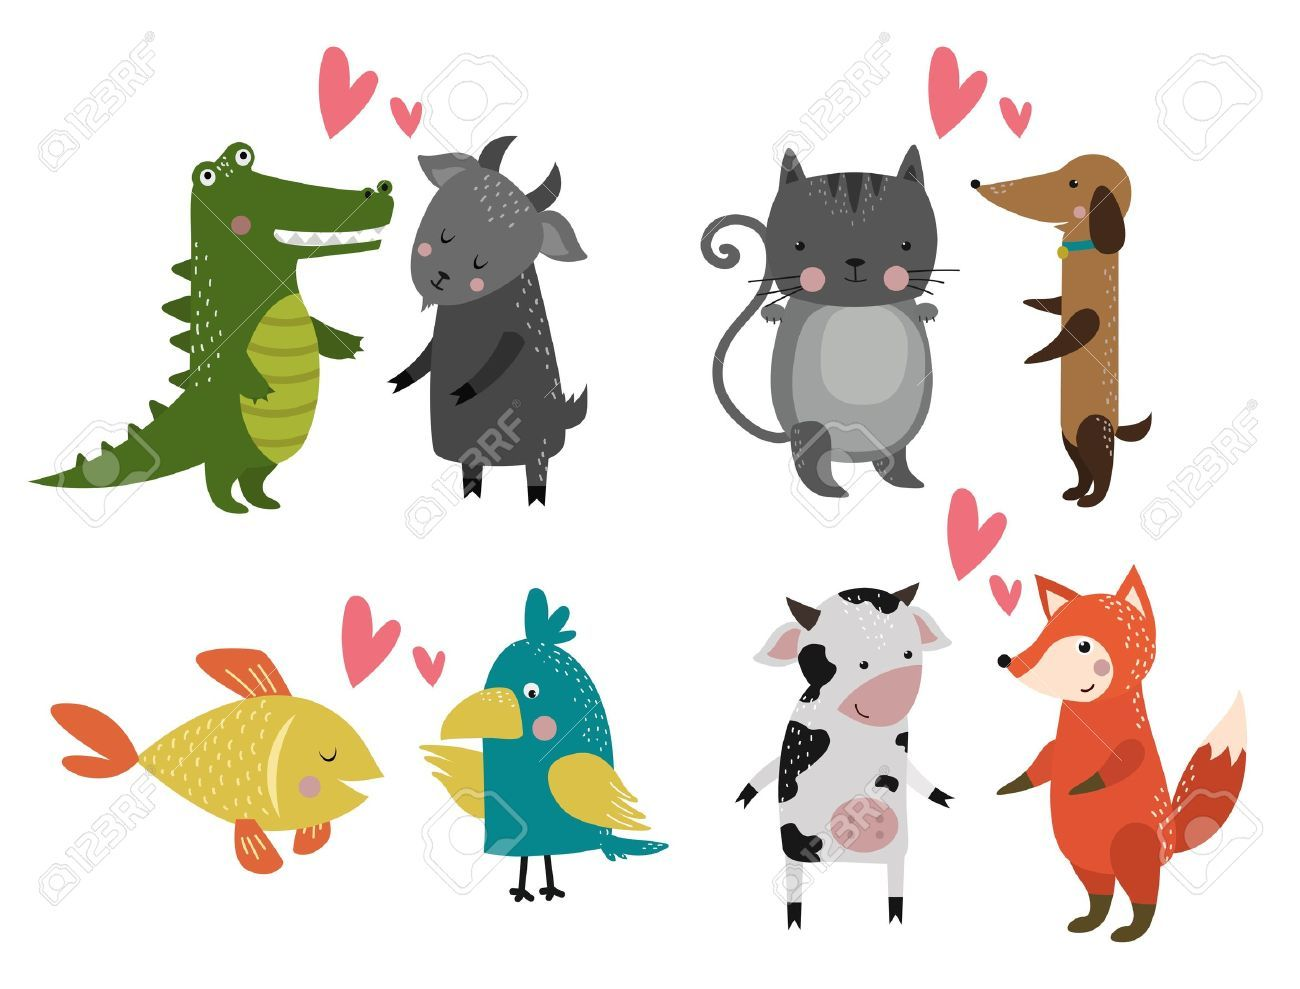 35+ Wild Animals And Pets Clipart